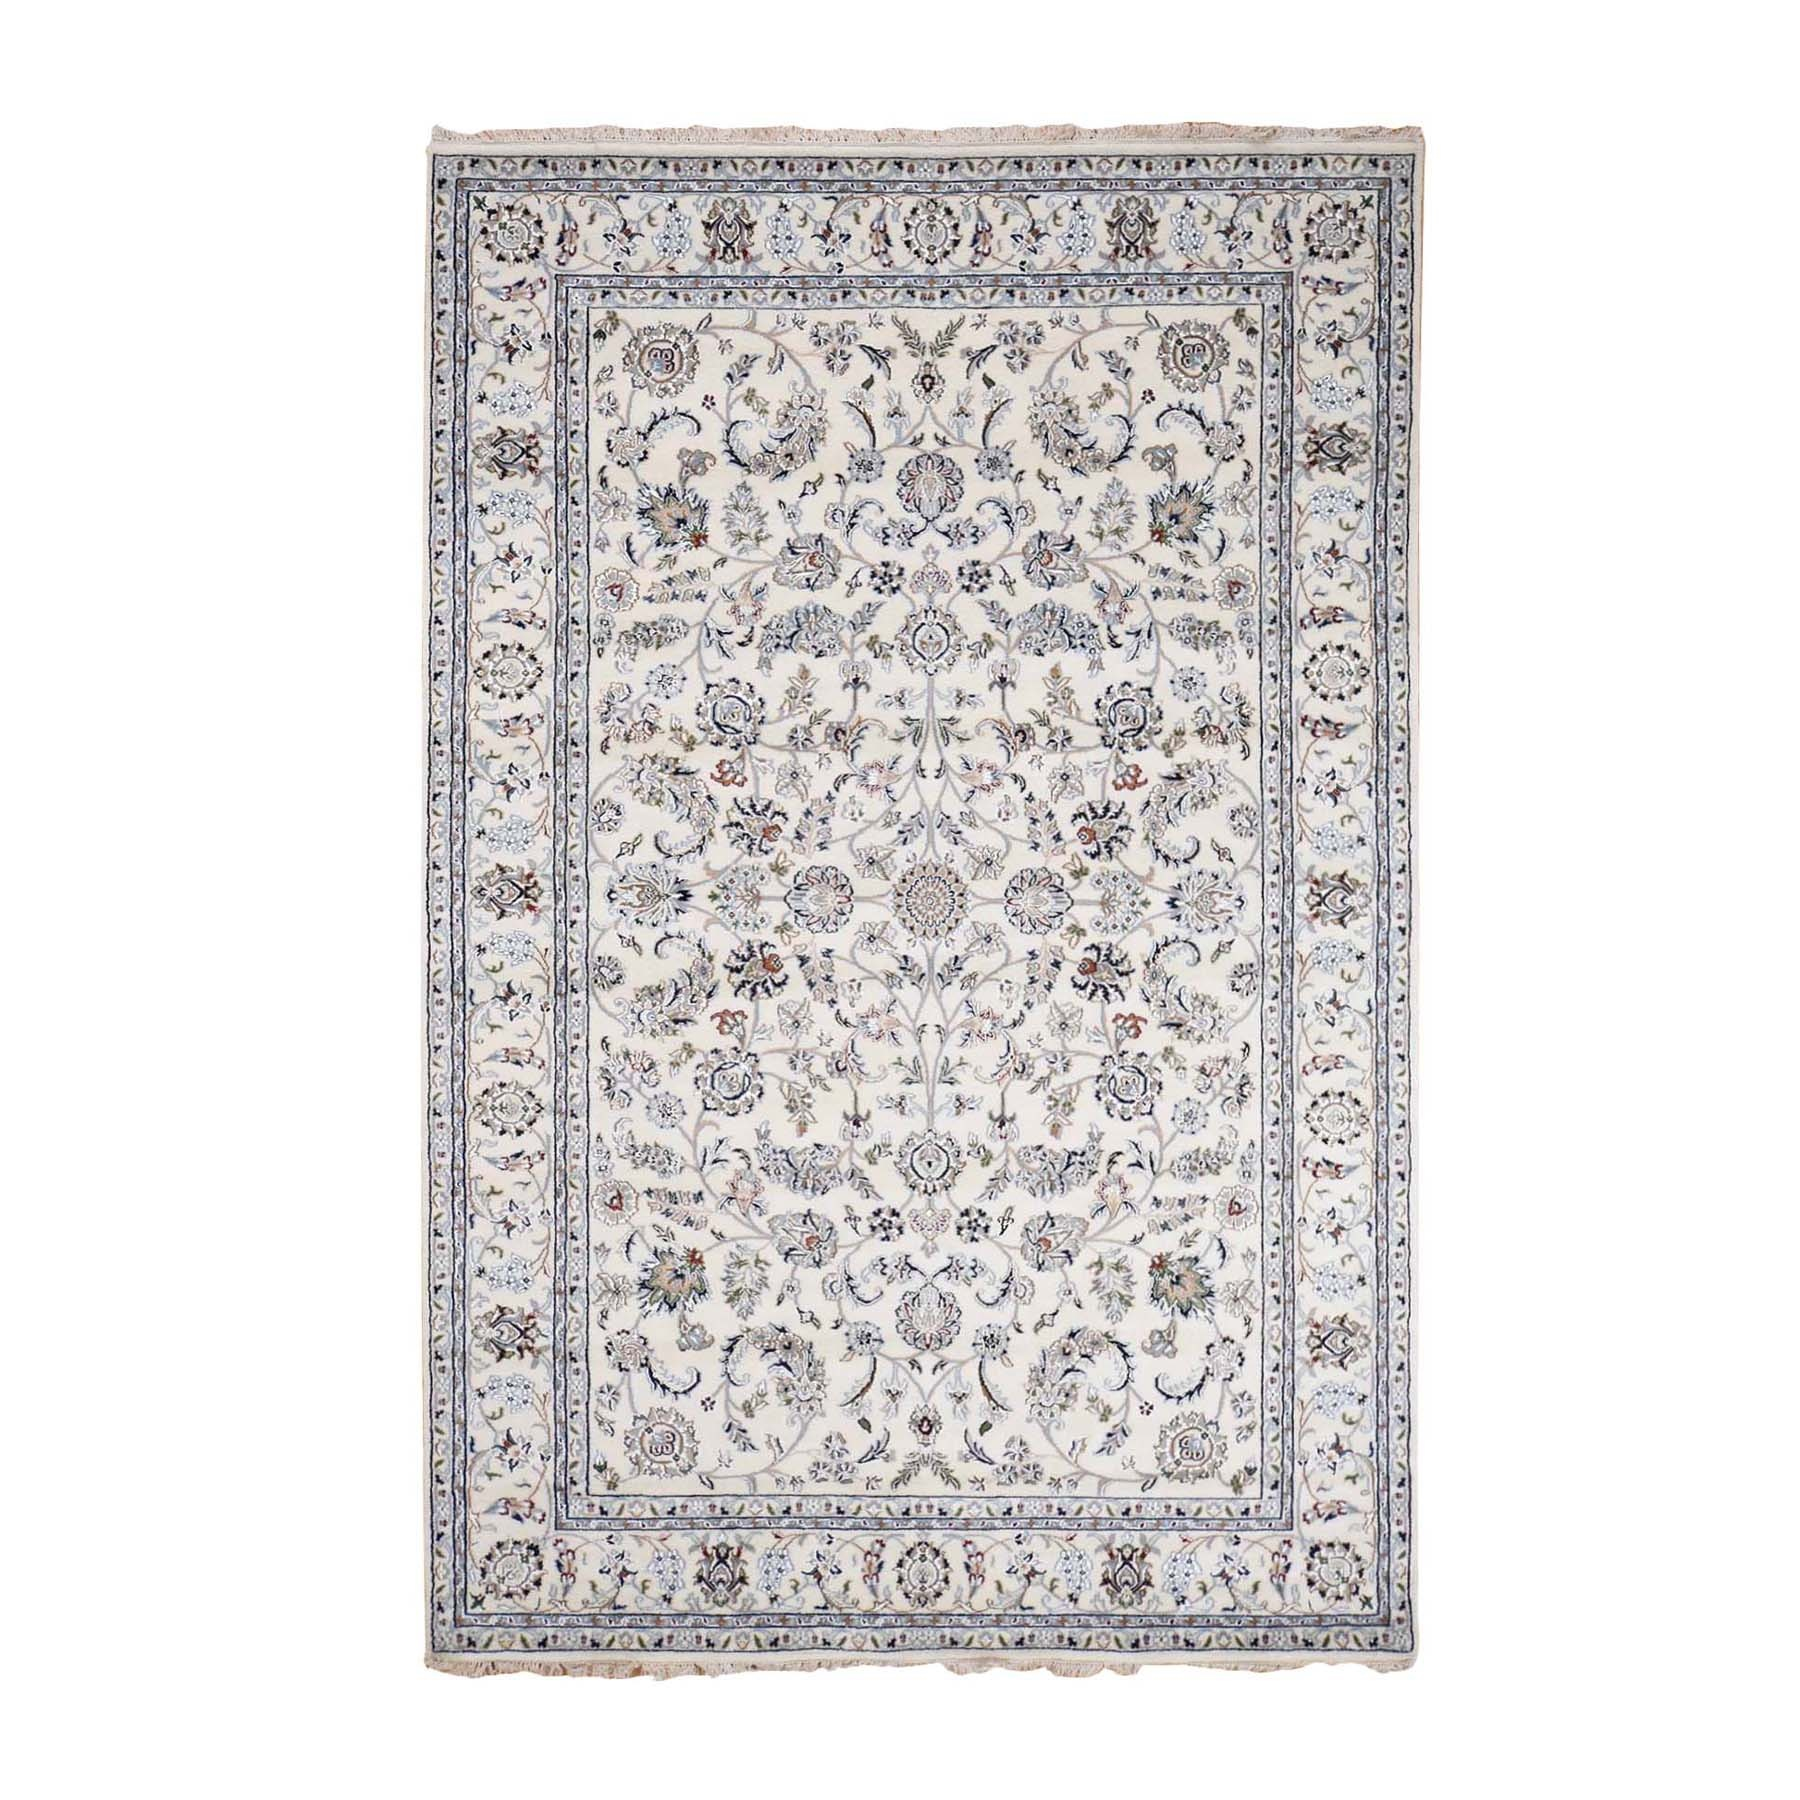 Pirniakan Collection Hand Knotted Ivory Rug No: 0195276